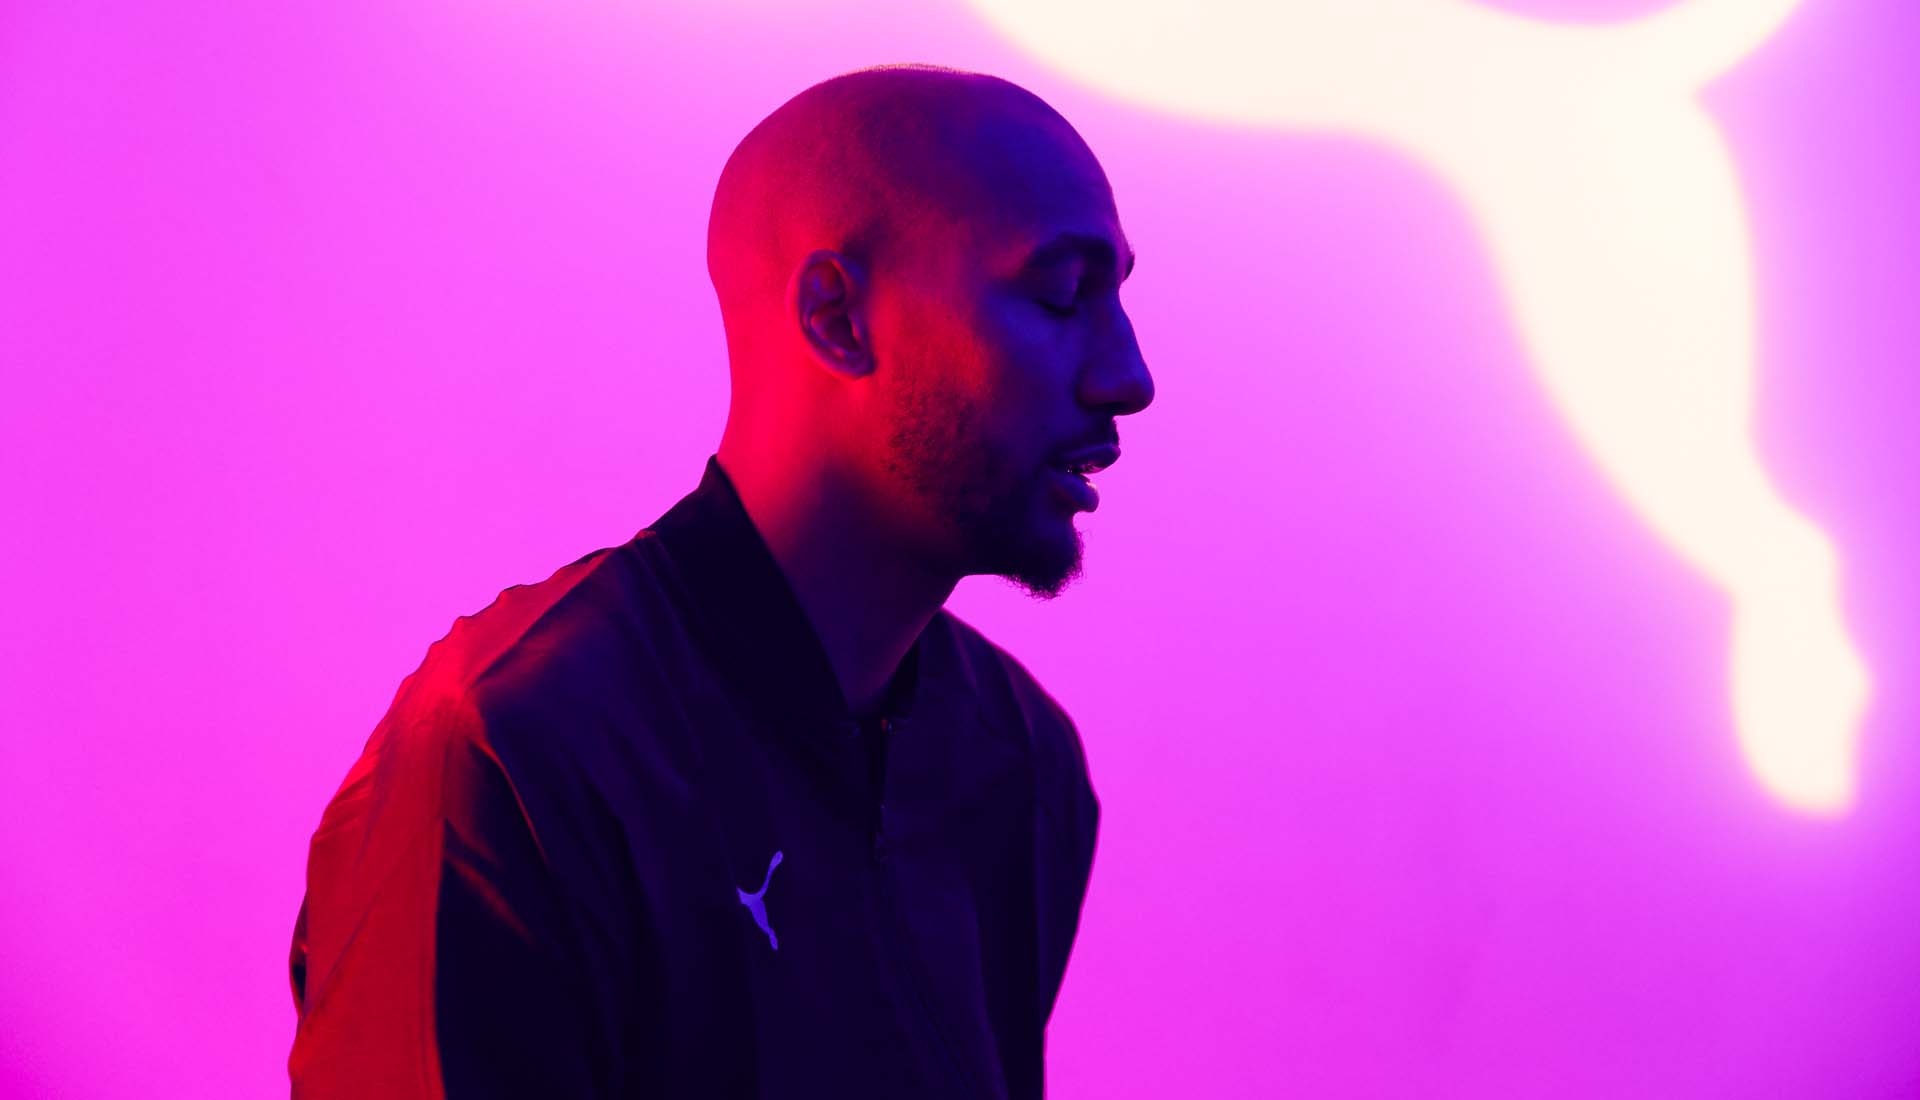 6-steven-nzonzi-france-puma-interview.jpg